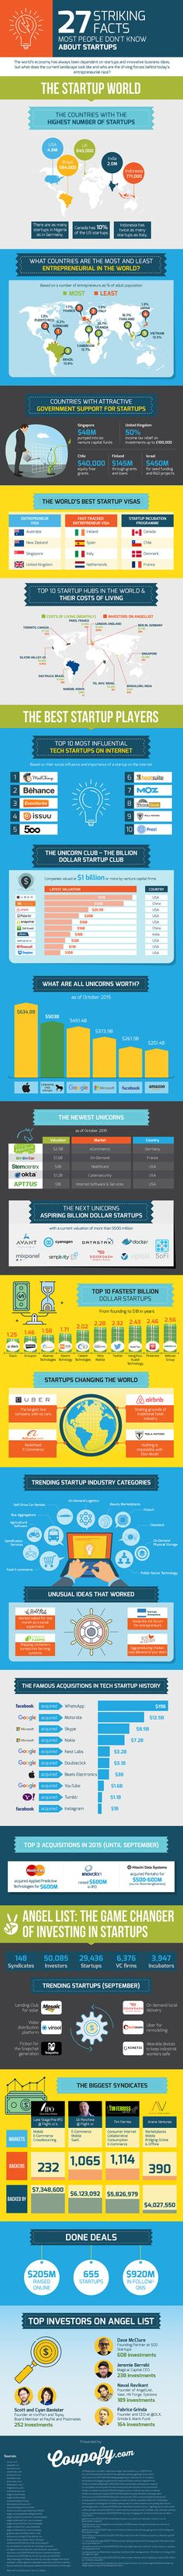 27 striking facts about startups around the world